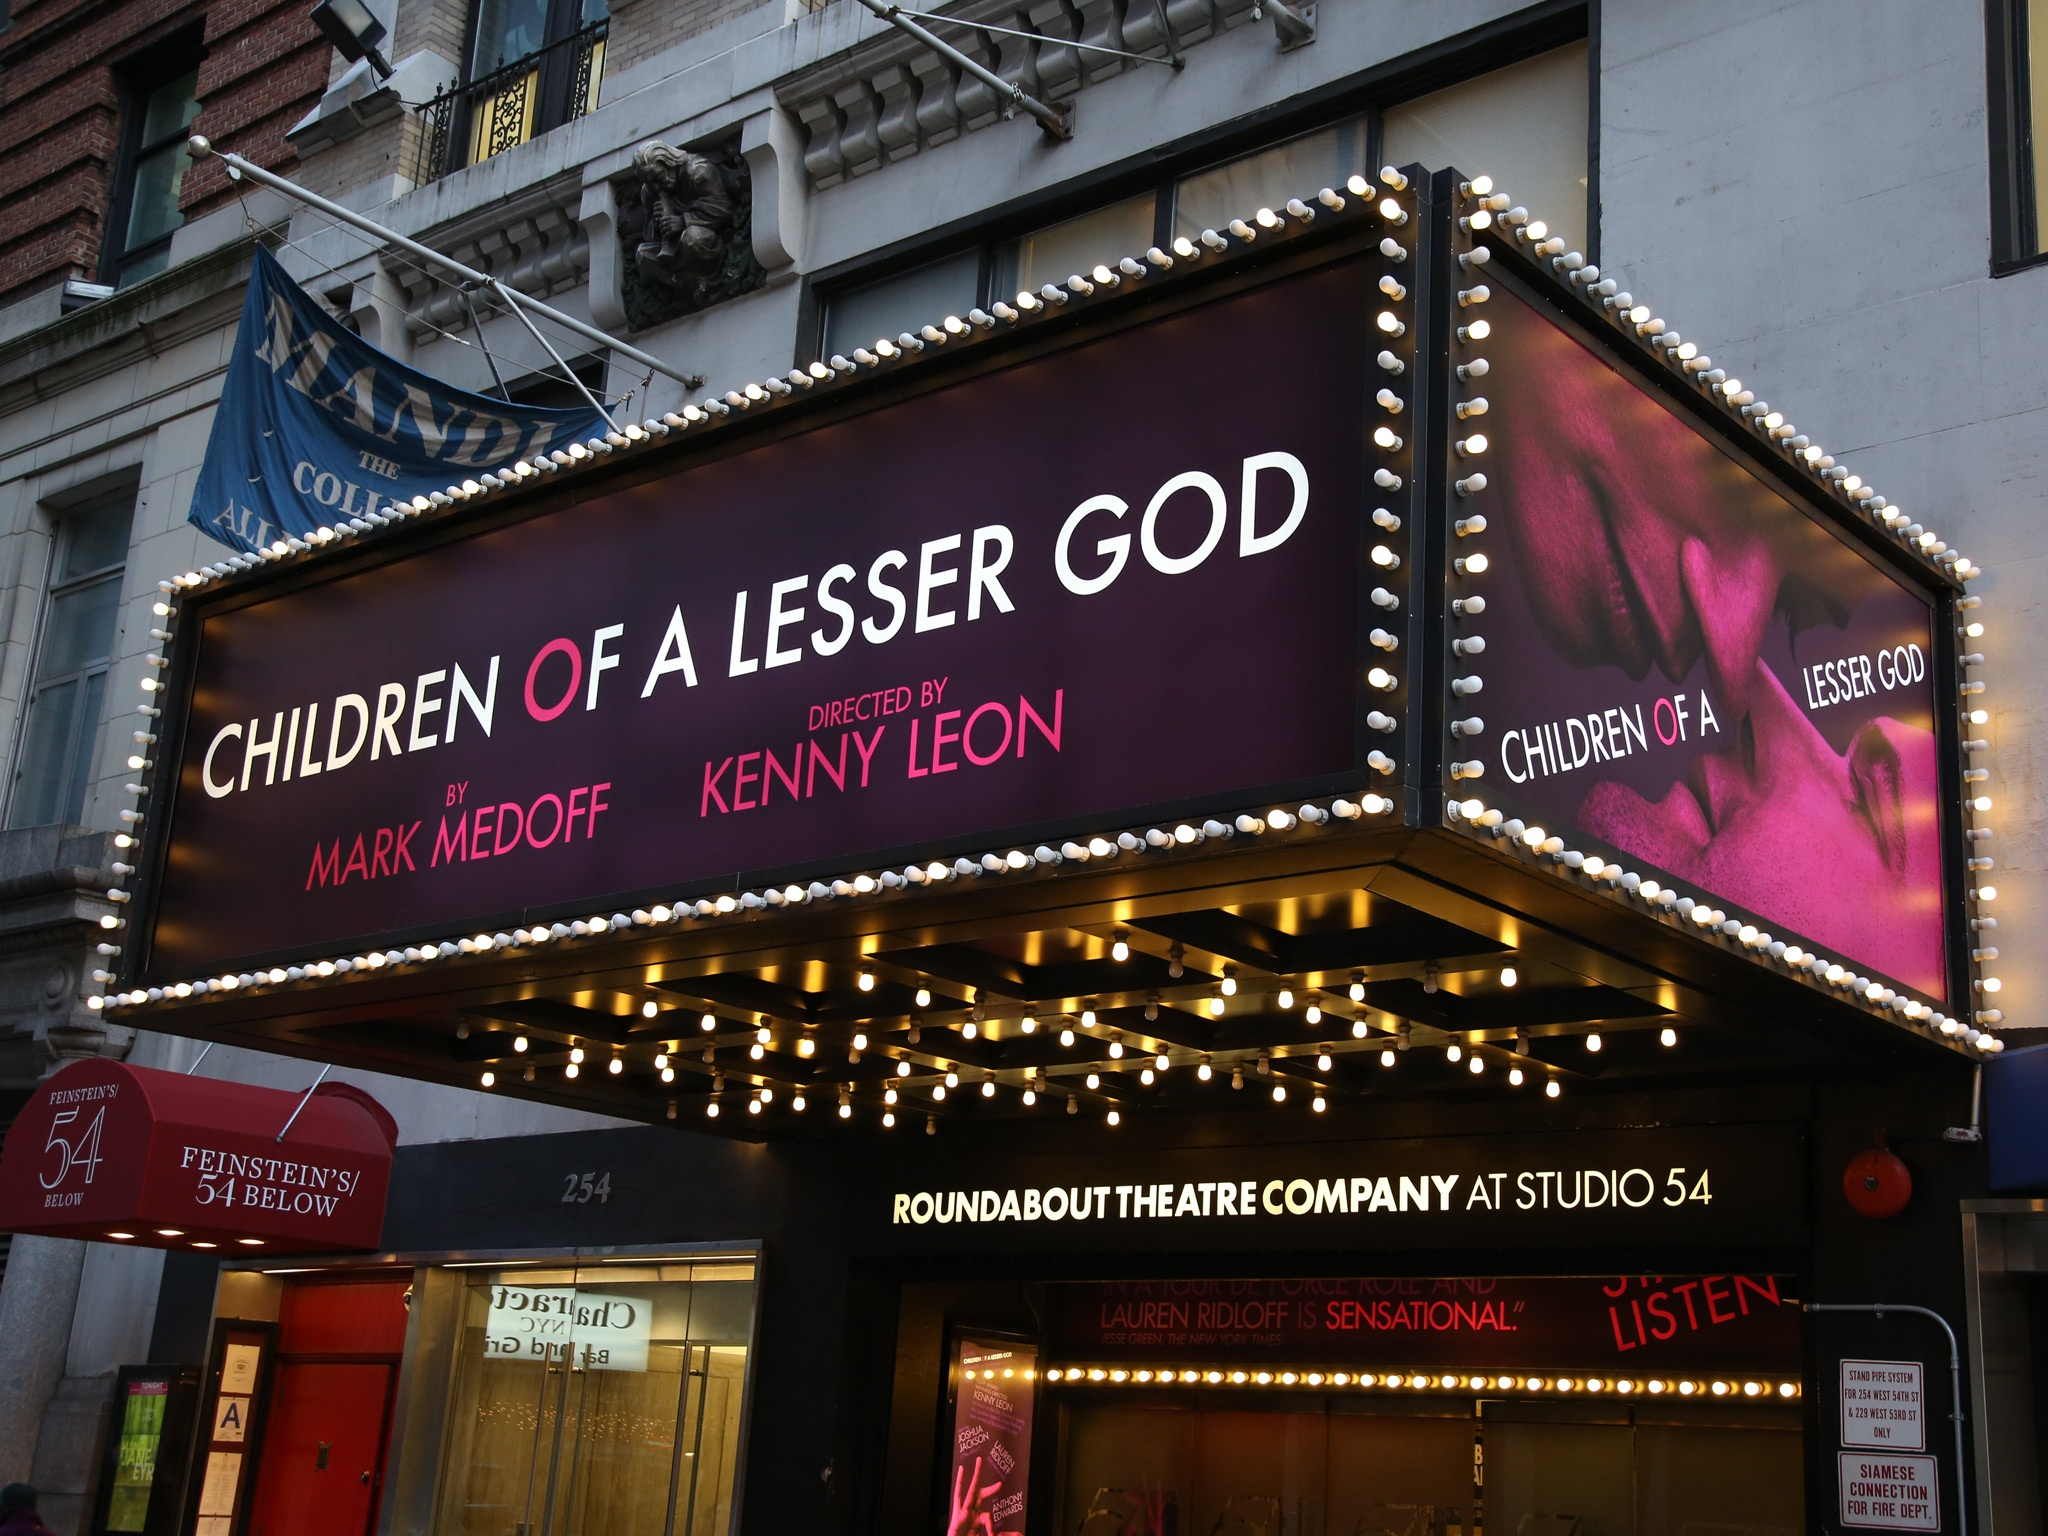 Children Of A Lesser God Theatre Marquee